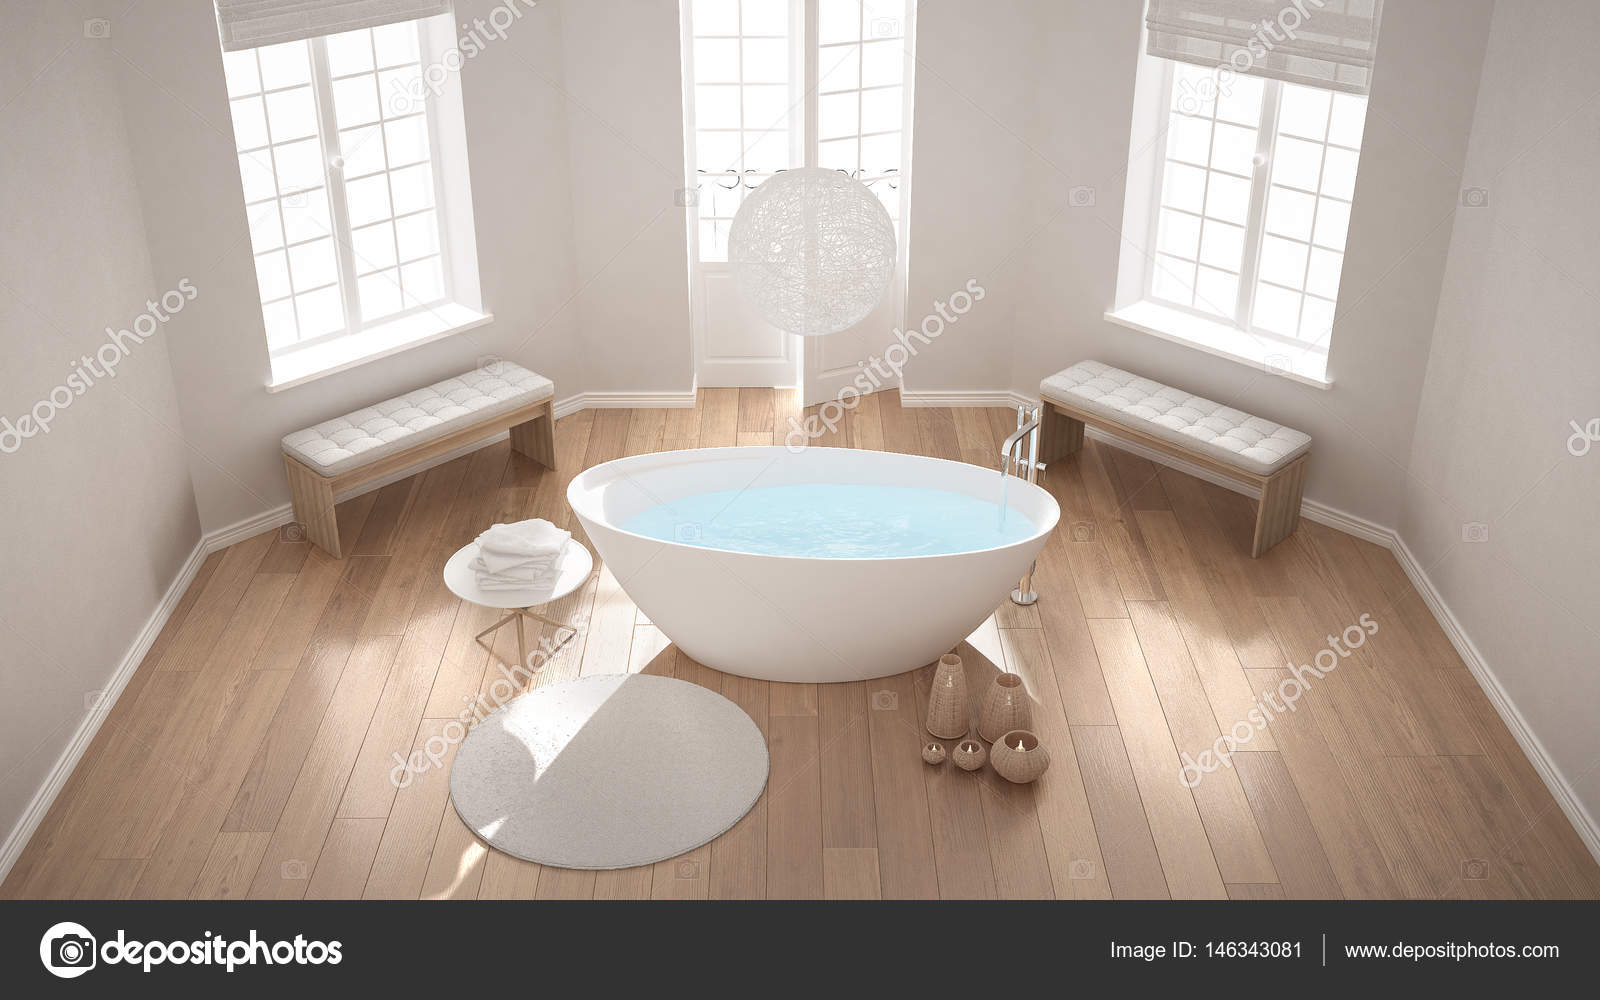 https://st3.depositphotos.com/1152281/14634/i/1600/depositphotos_146343081-stock-photo-zen-classic-spa-bathroom-with.jpg